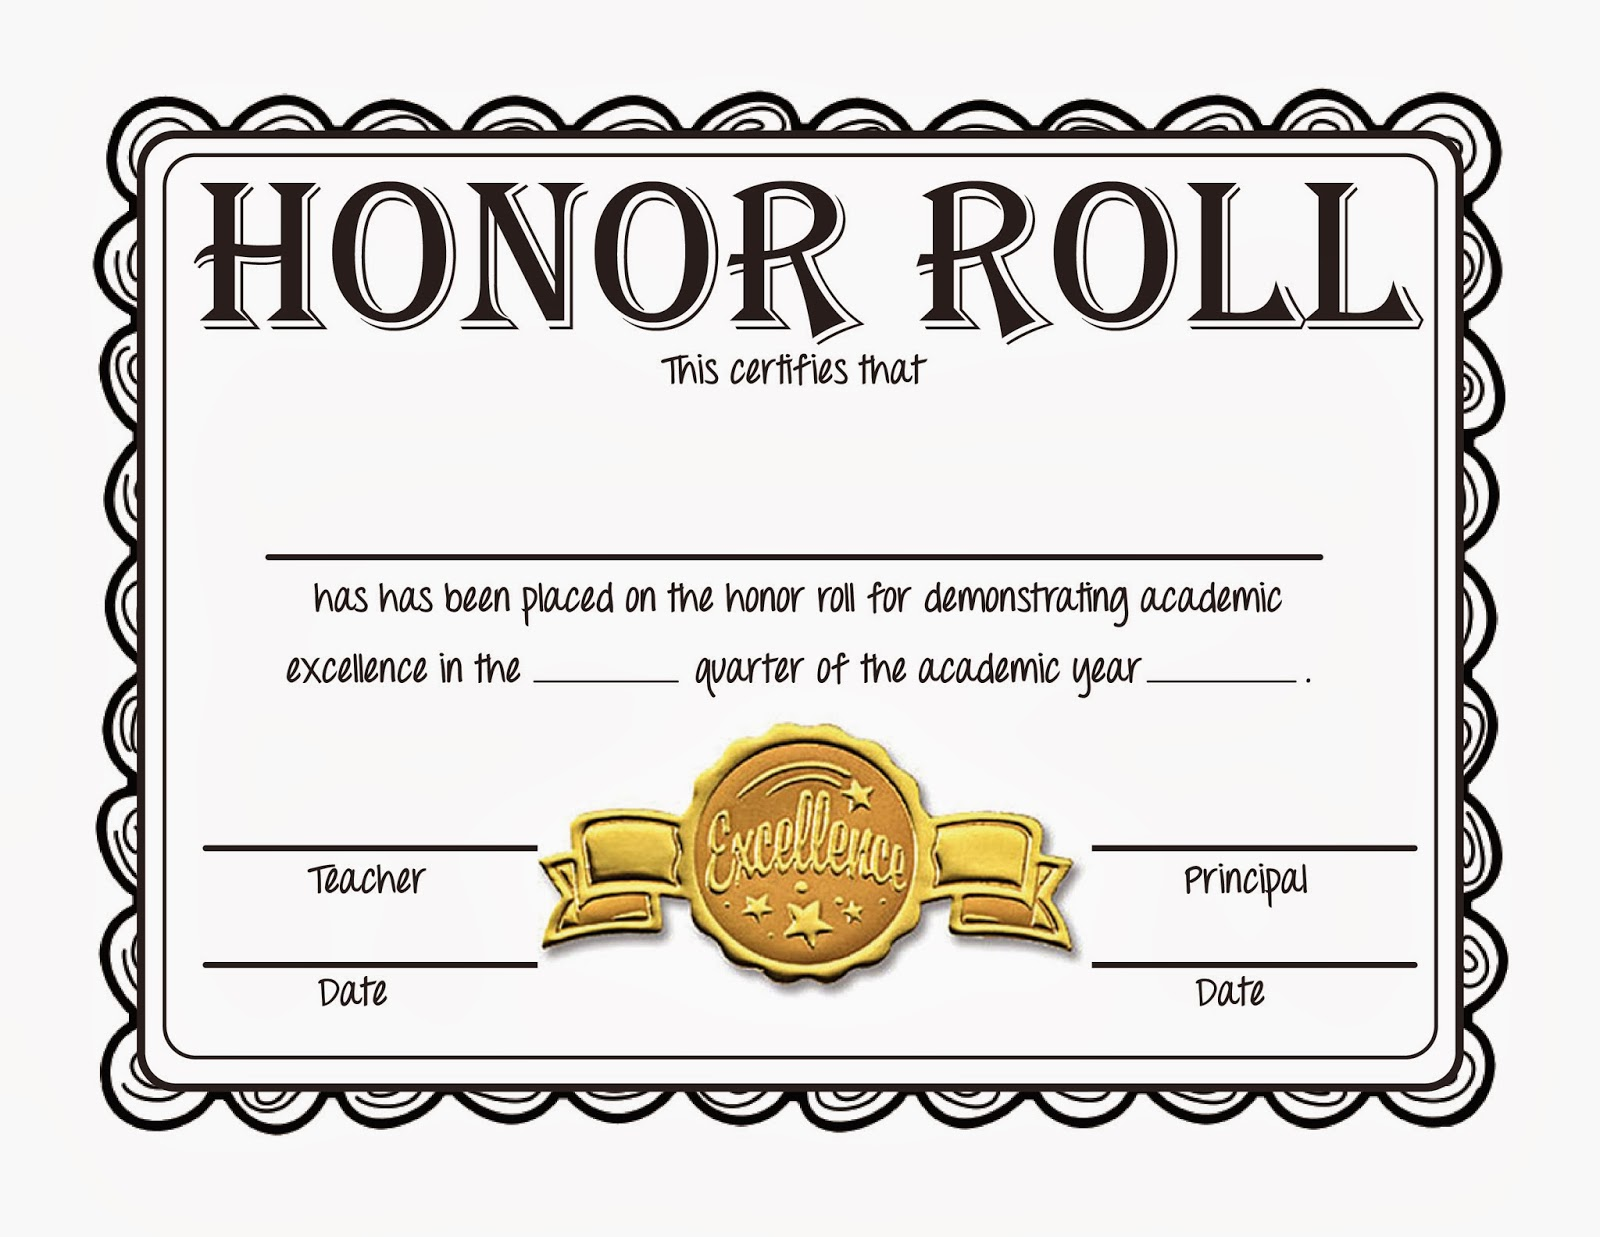 Mesmerizing image for free printable honor roll certificates